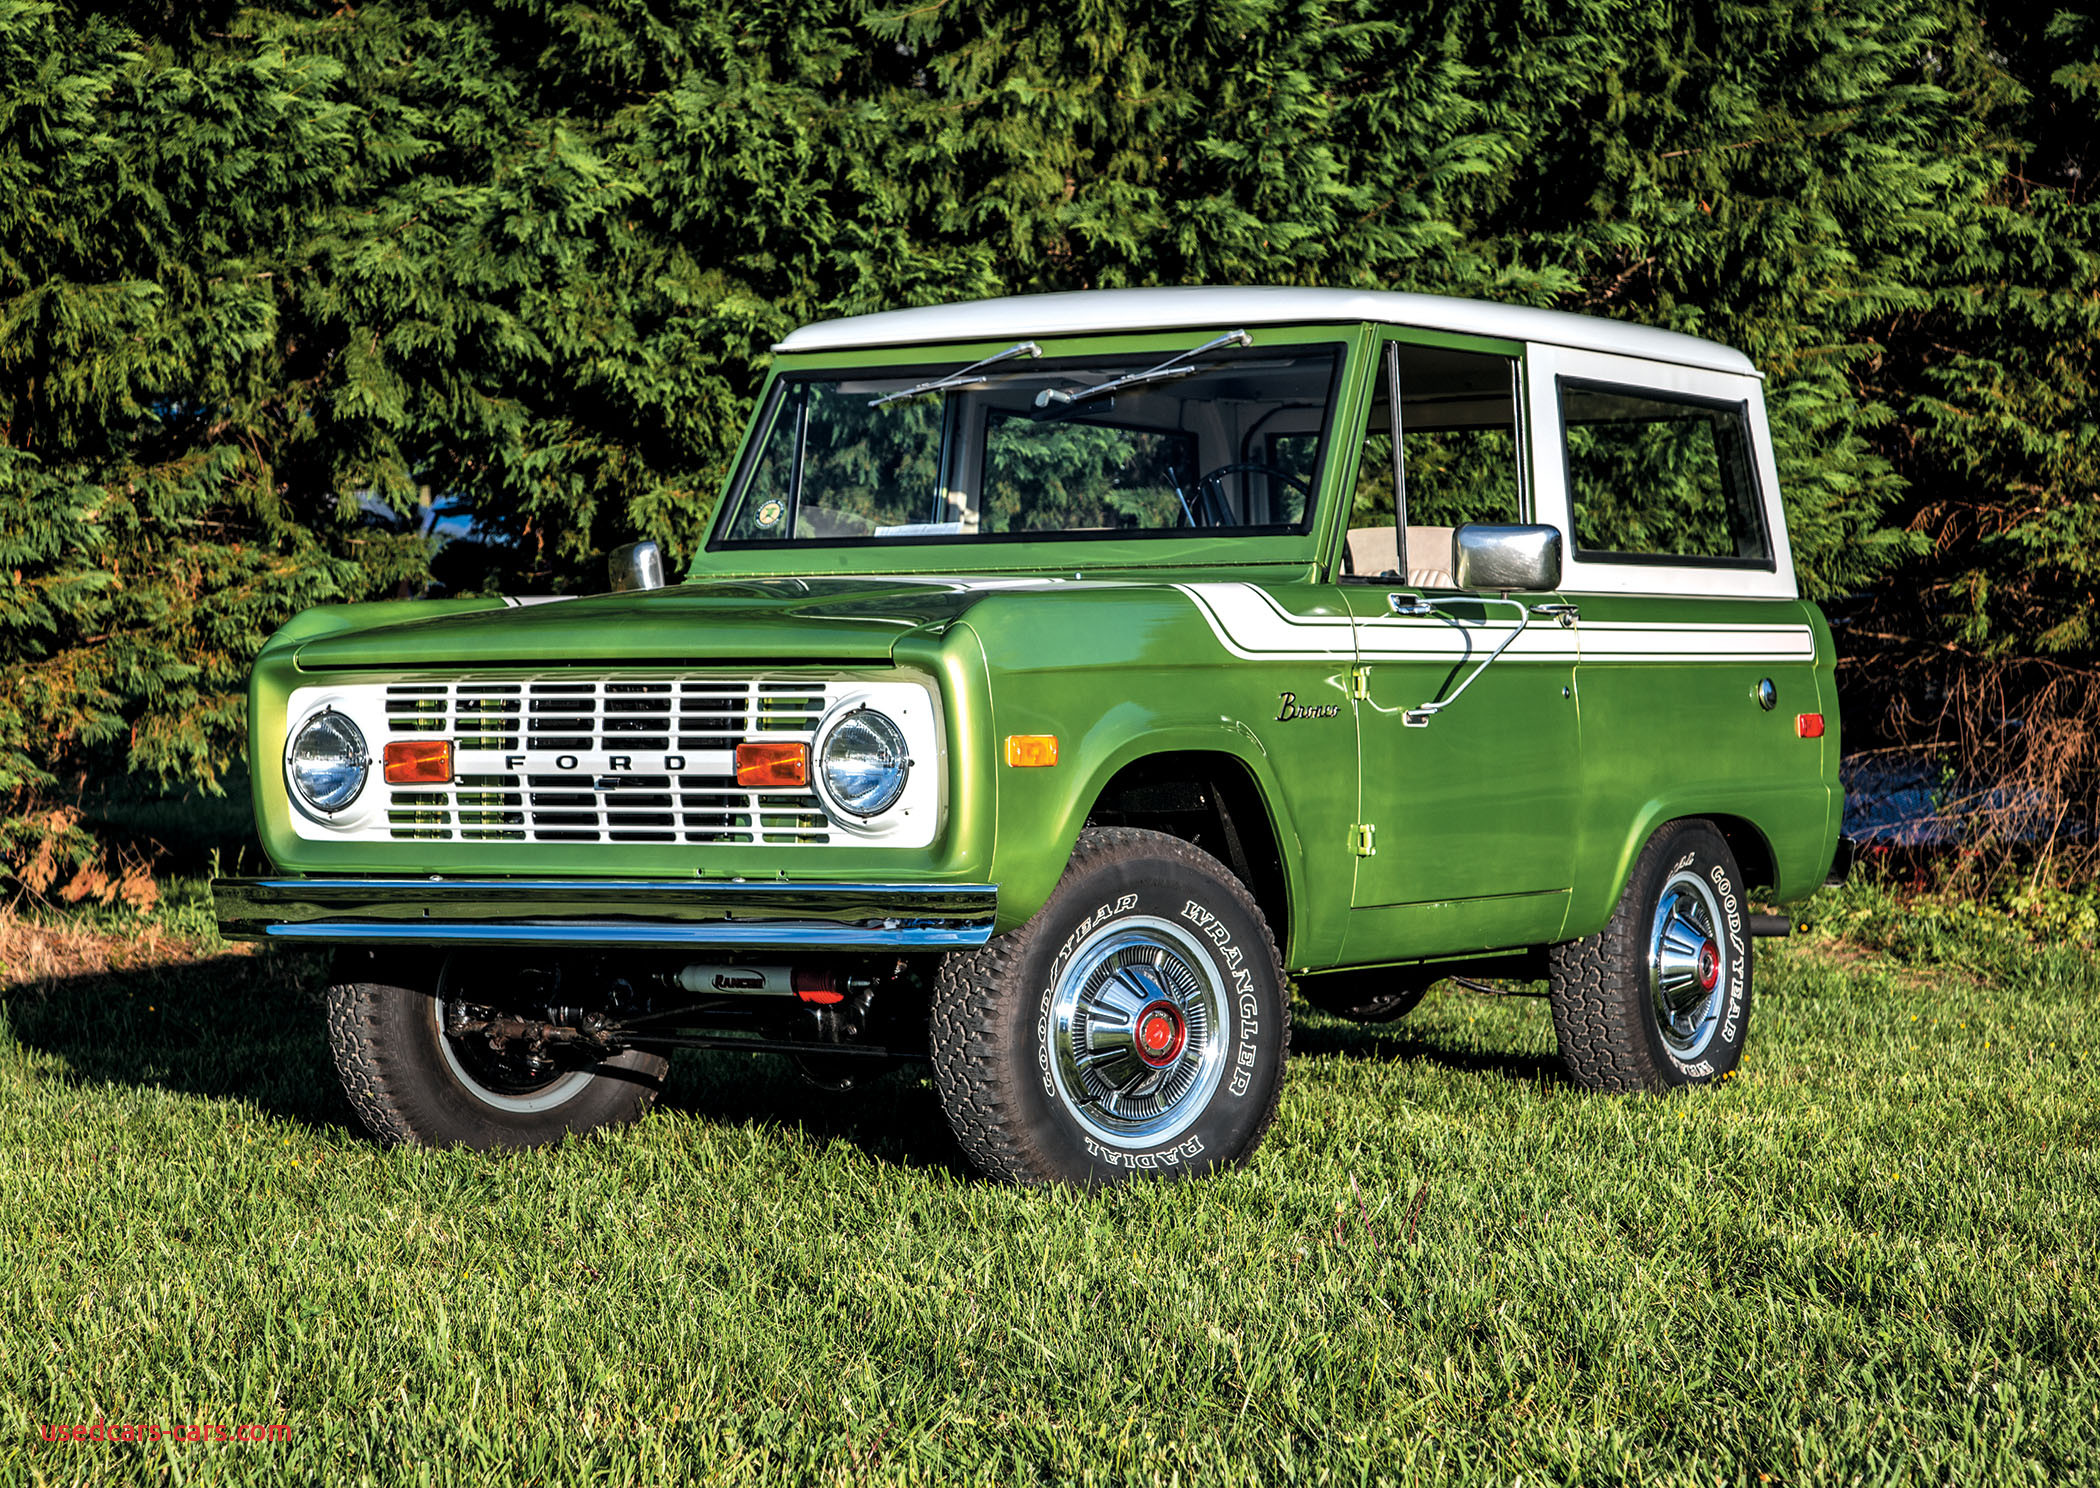 2020 ford Bronco Reddit Beautiful 1975 ford Bronco Rodney F Lmc Truck Life